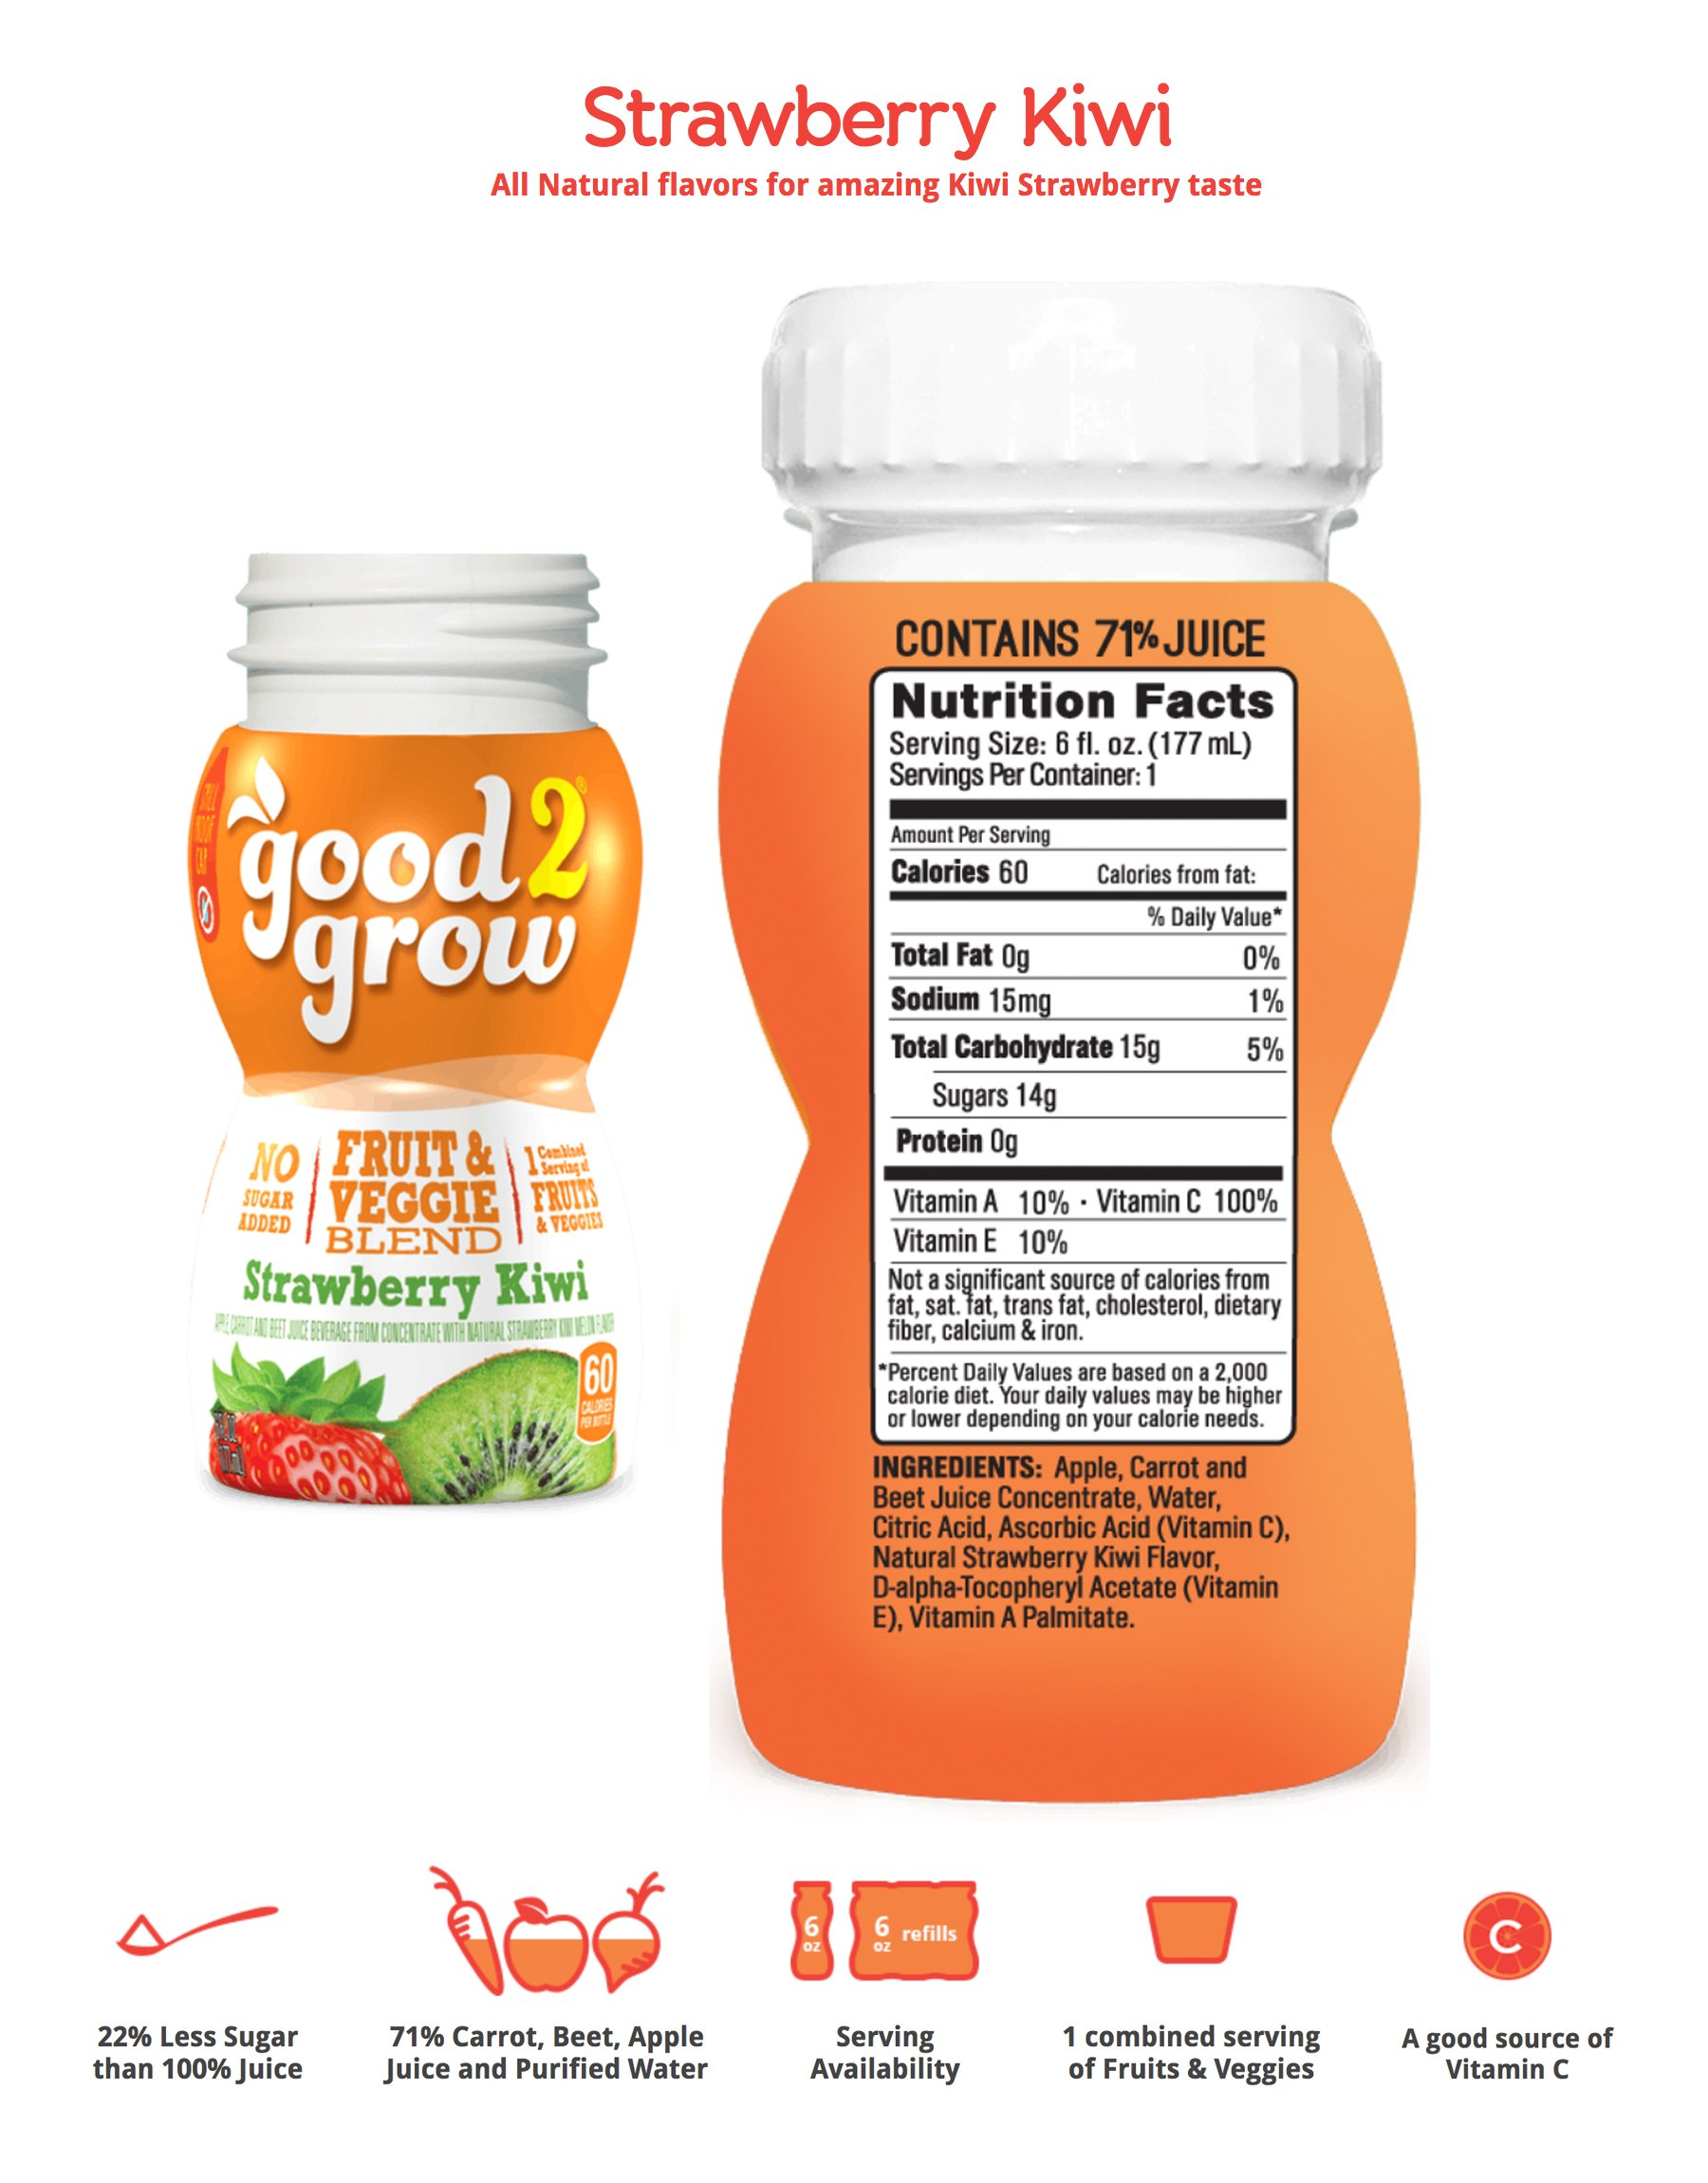 good2grow Fruit & Veggie Blend – Strawberry Kiwi 6oz Refill Drink Bottles Pack, 24 Count - No Sugar Added, An Excellent Source of Vitamin C - Use with Collectible Spill-Proof Topper Characters by good2grow (Image #2)